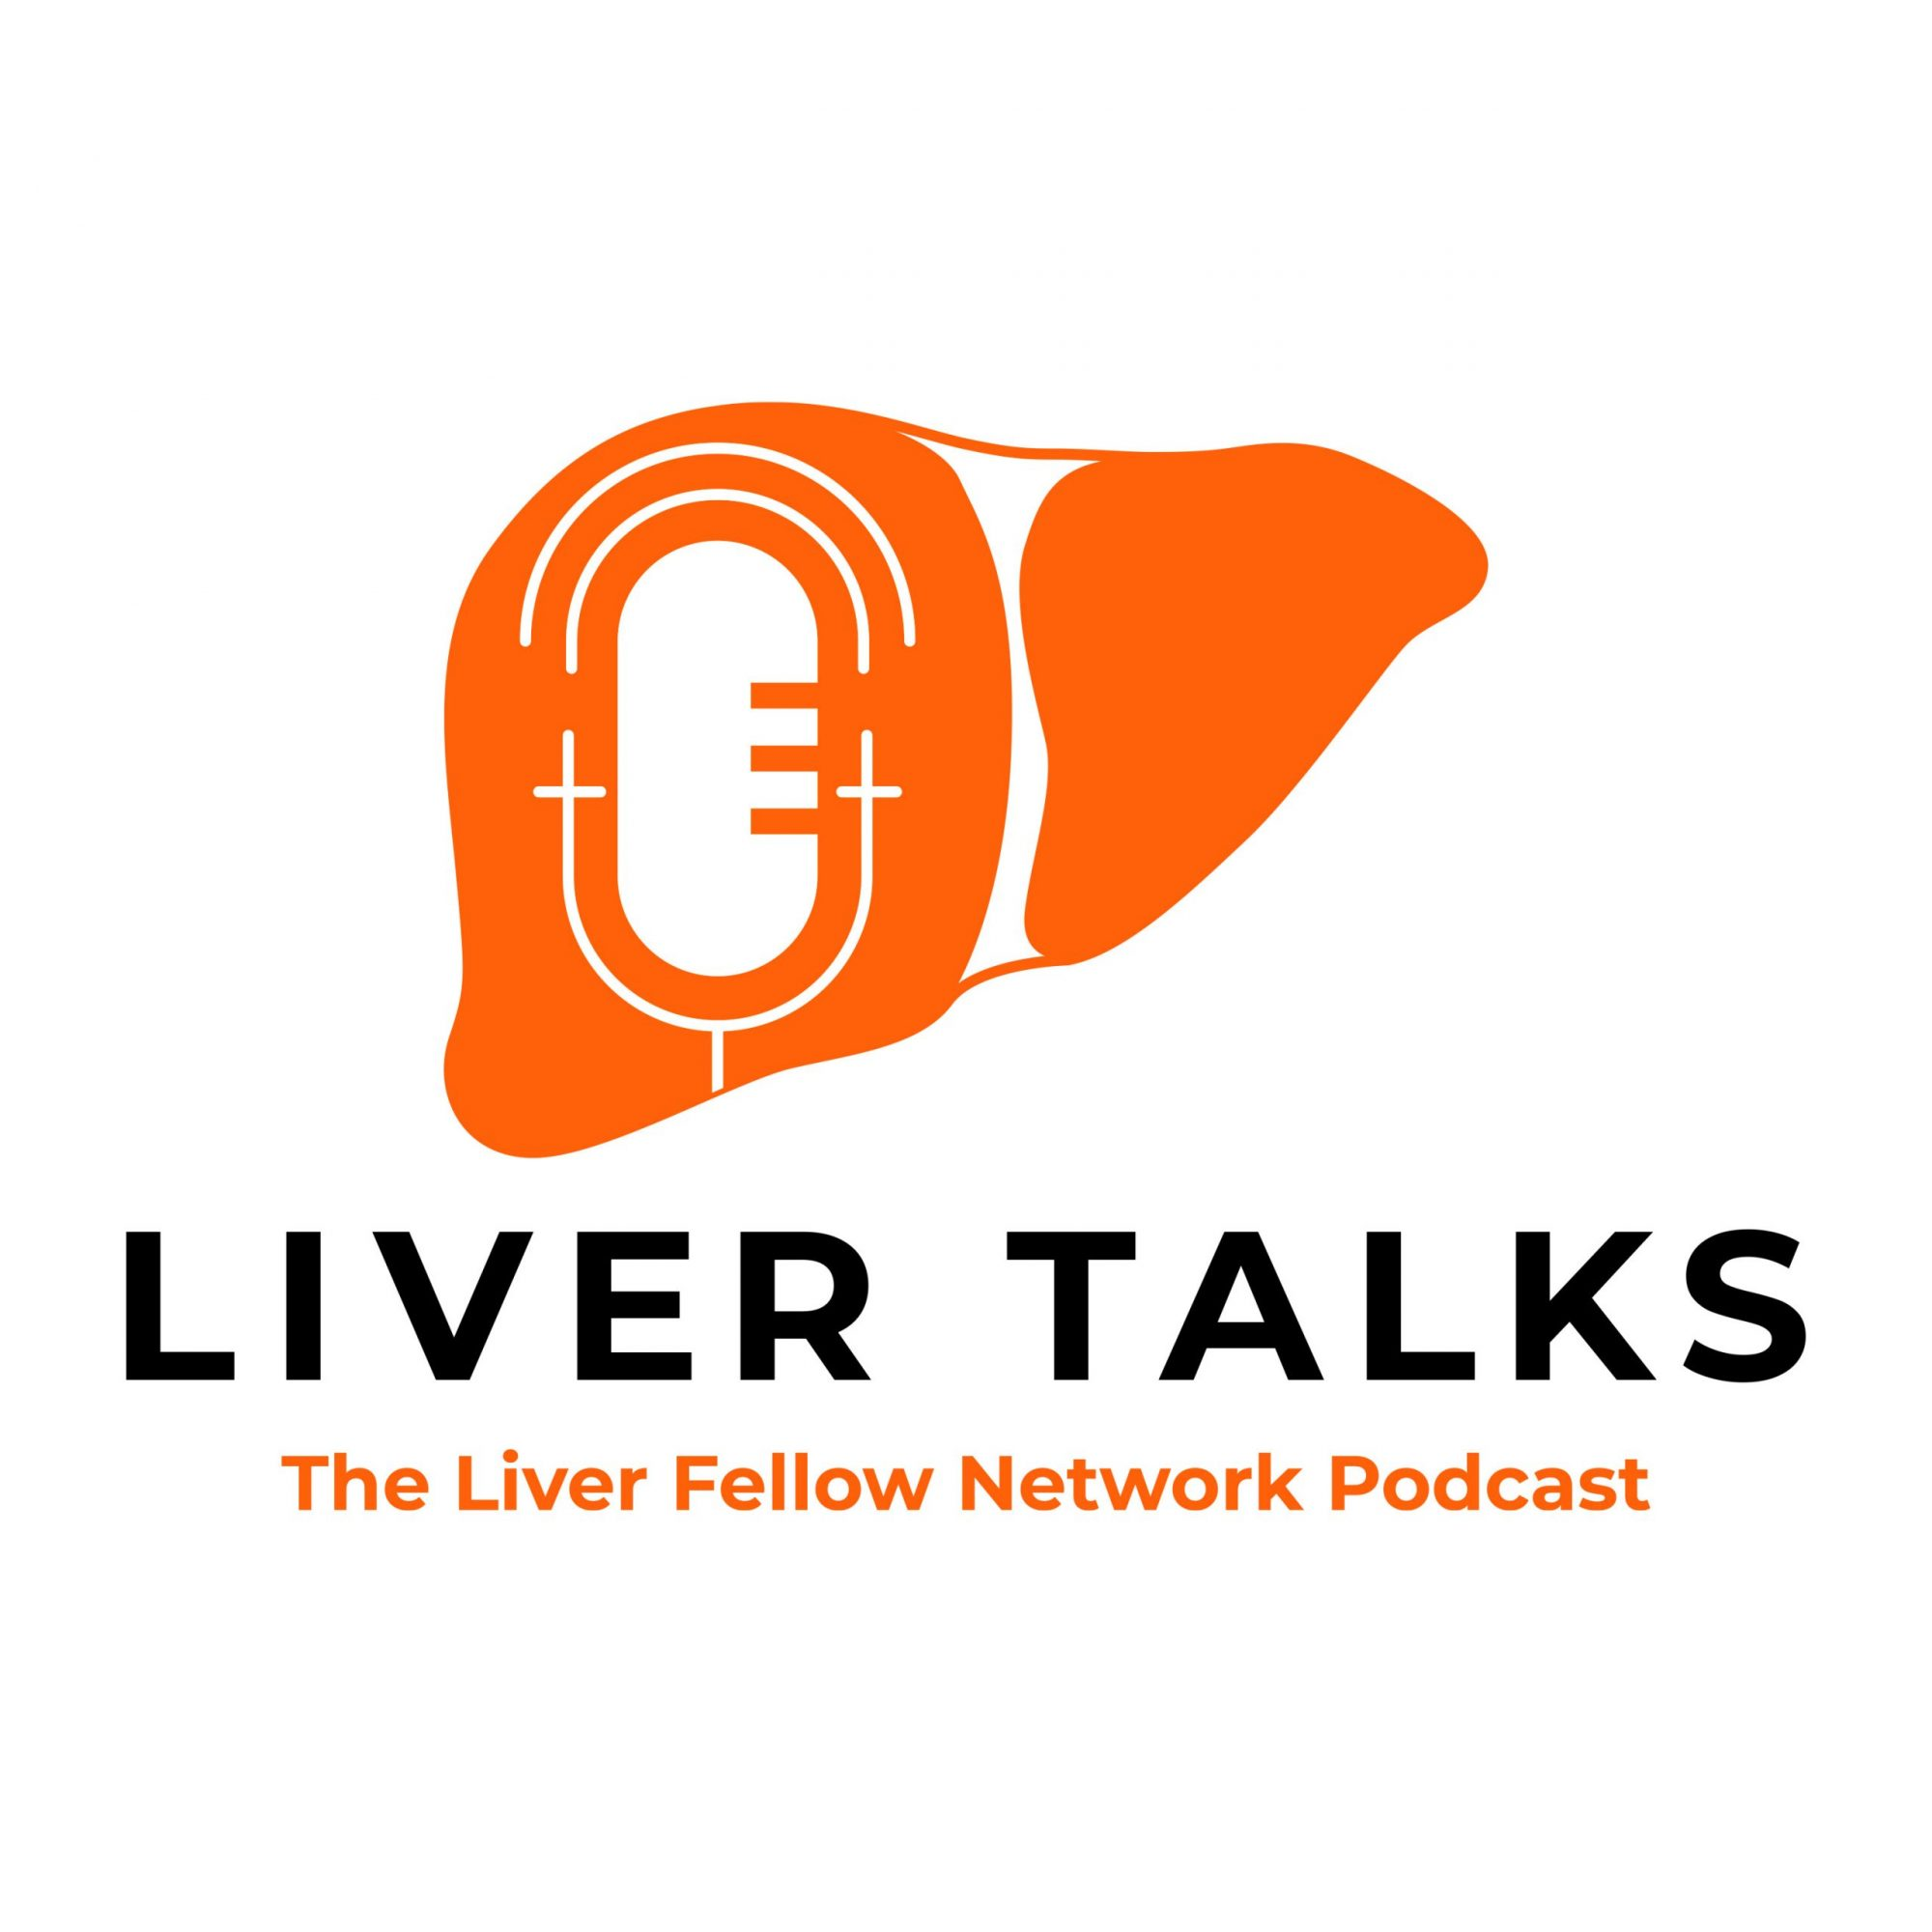 livertalks-logo